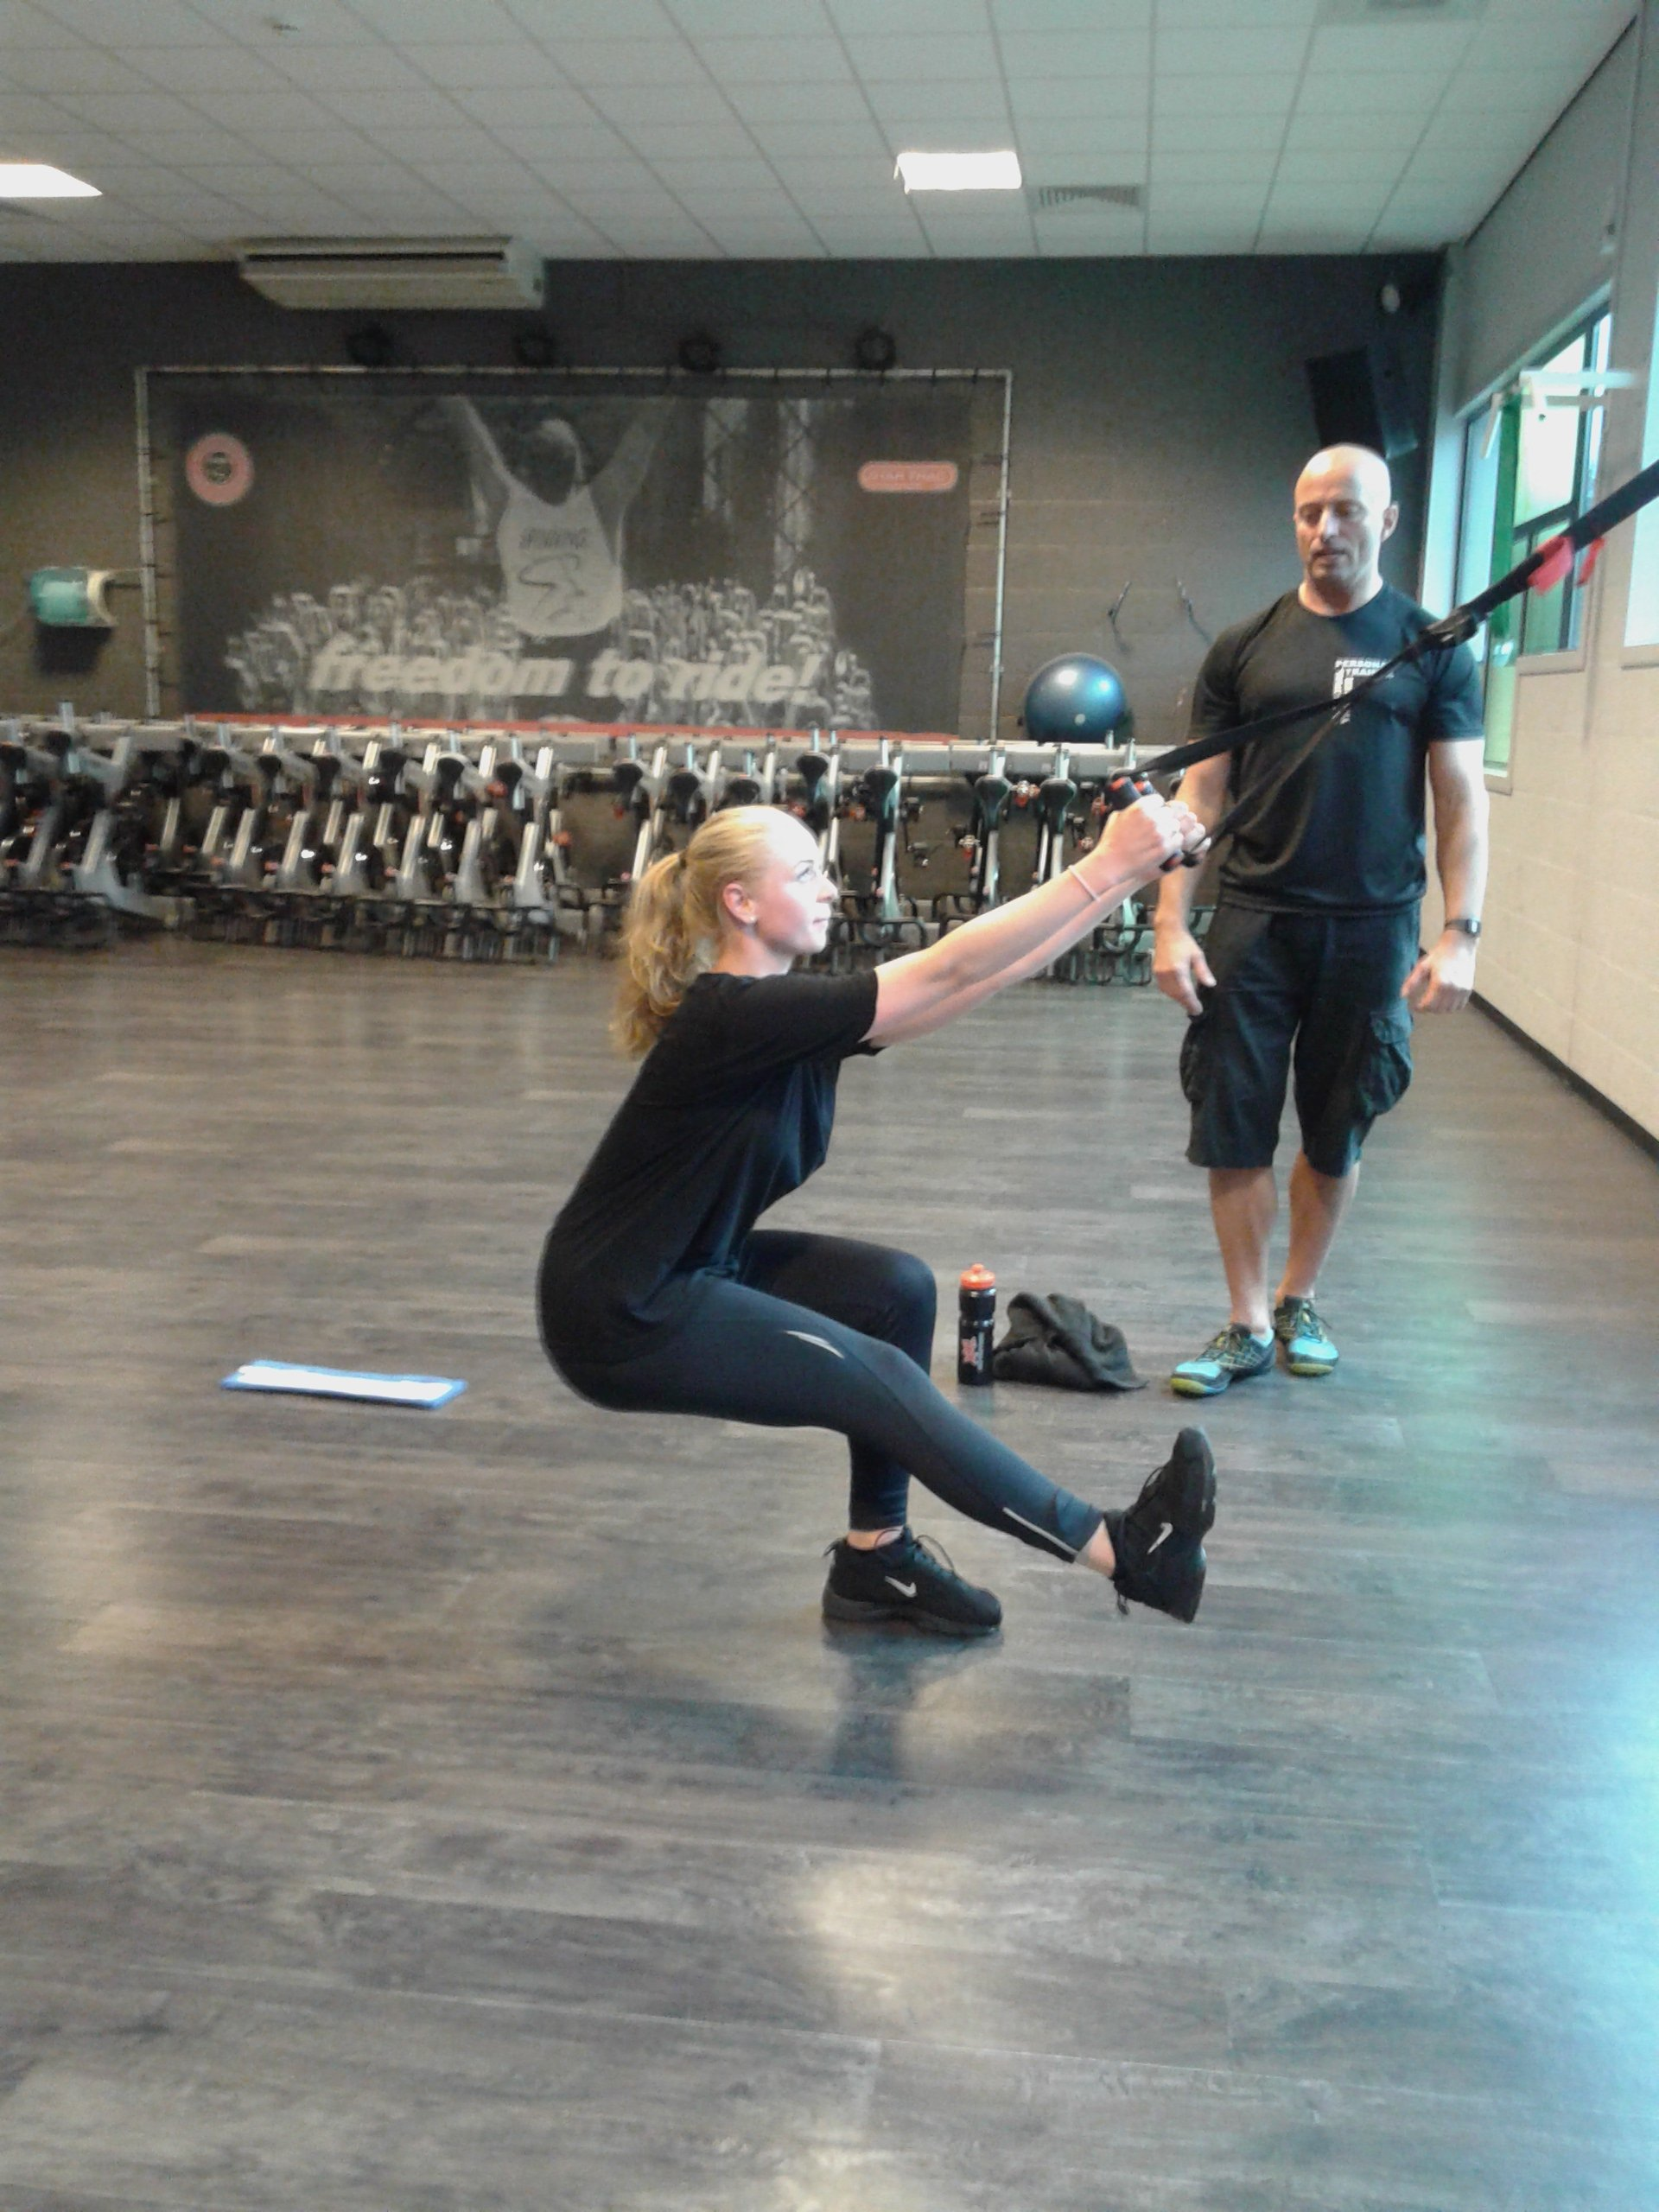 PT jefitcoach Ray Purmerend